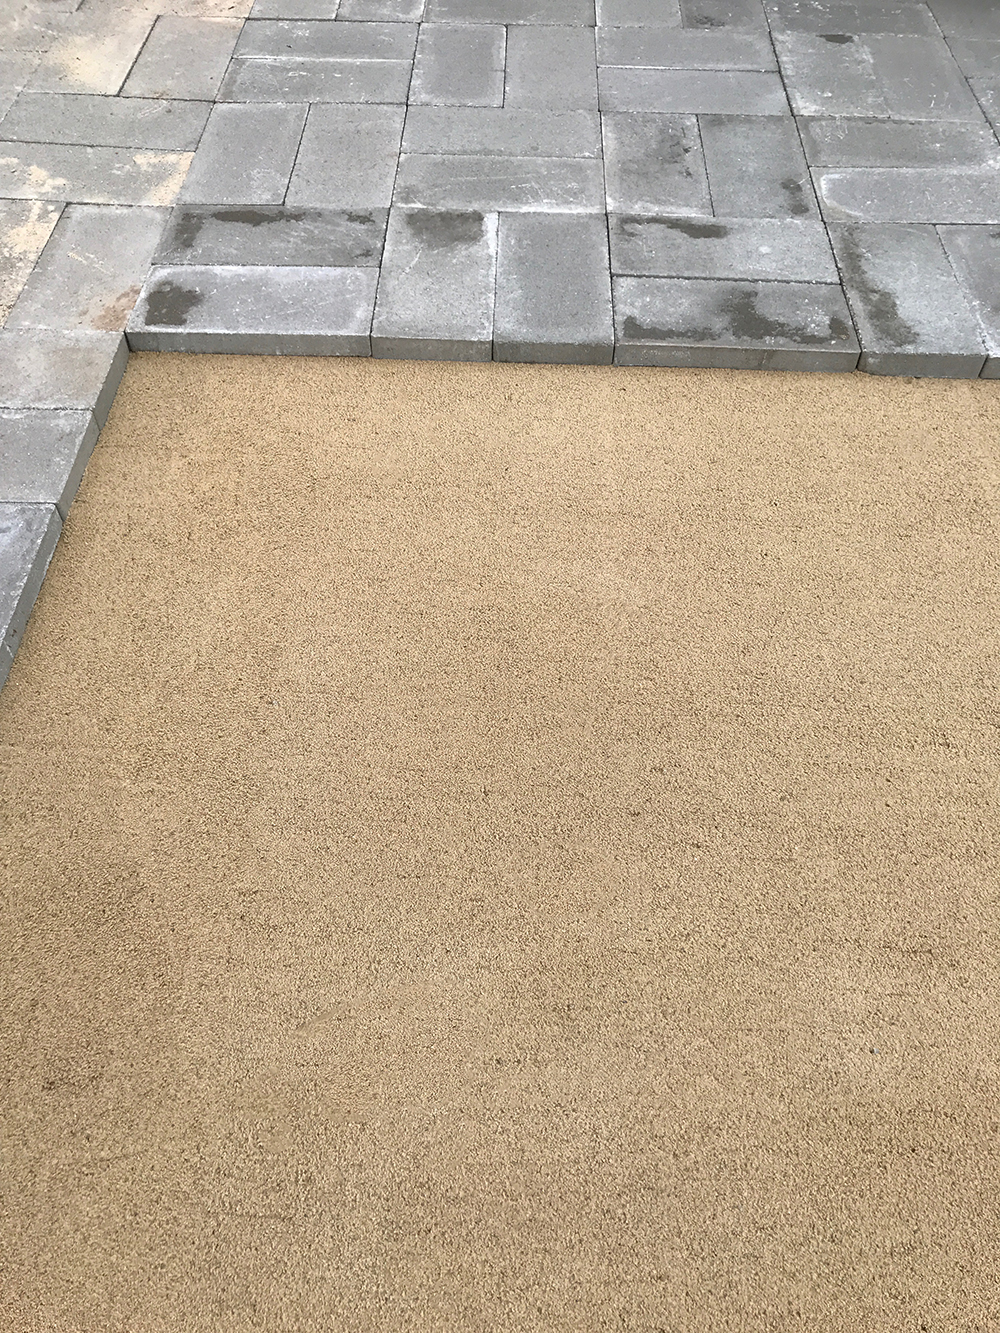 Paver Patio Instructions